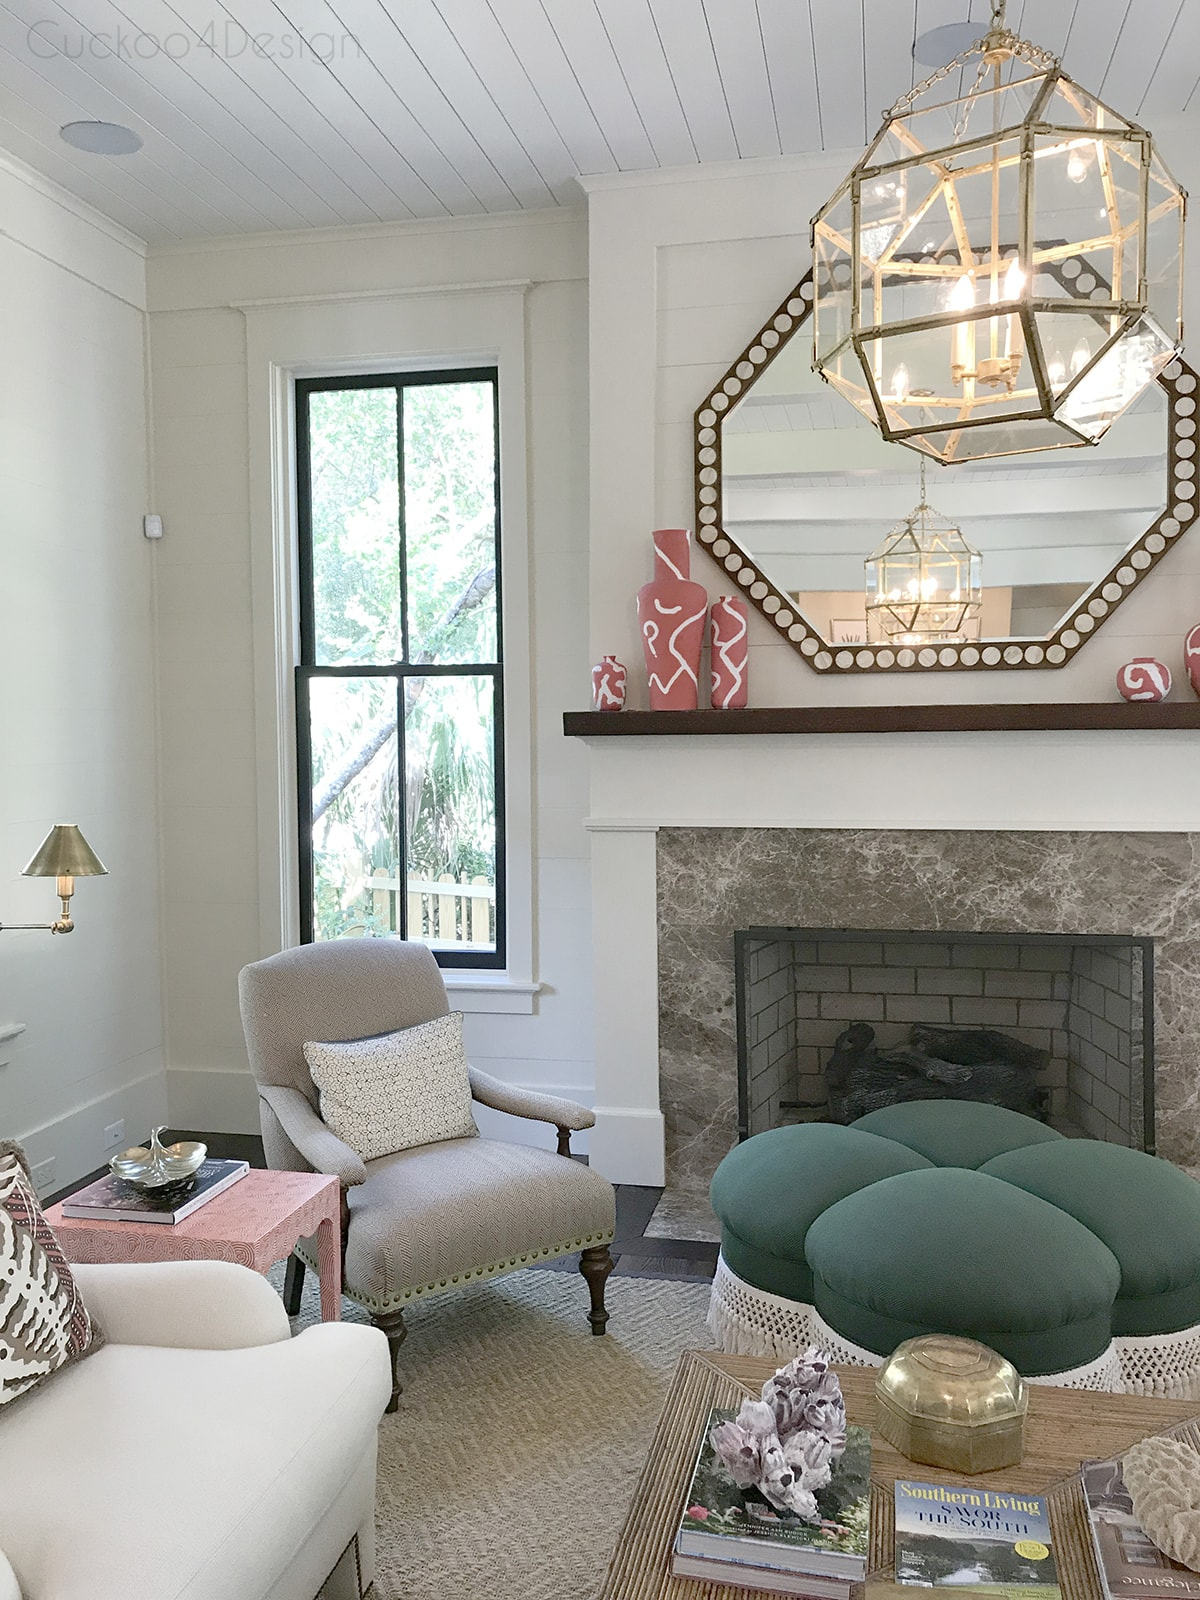 view of living room fireplace area